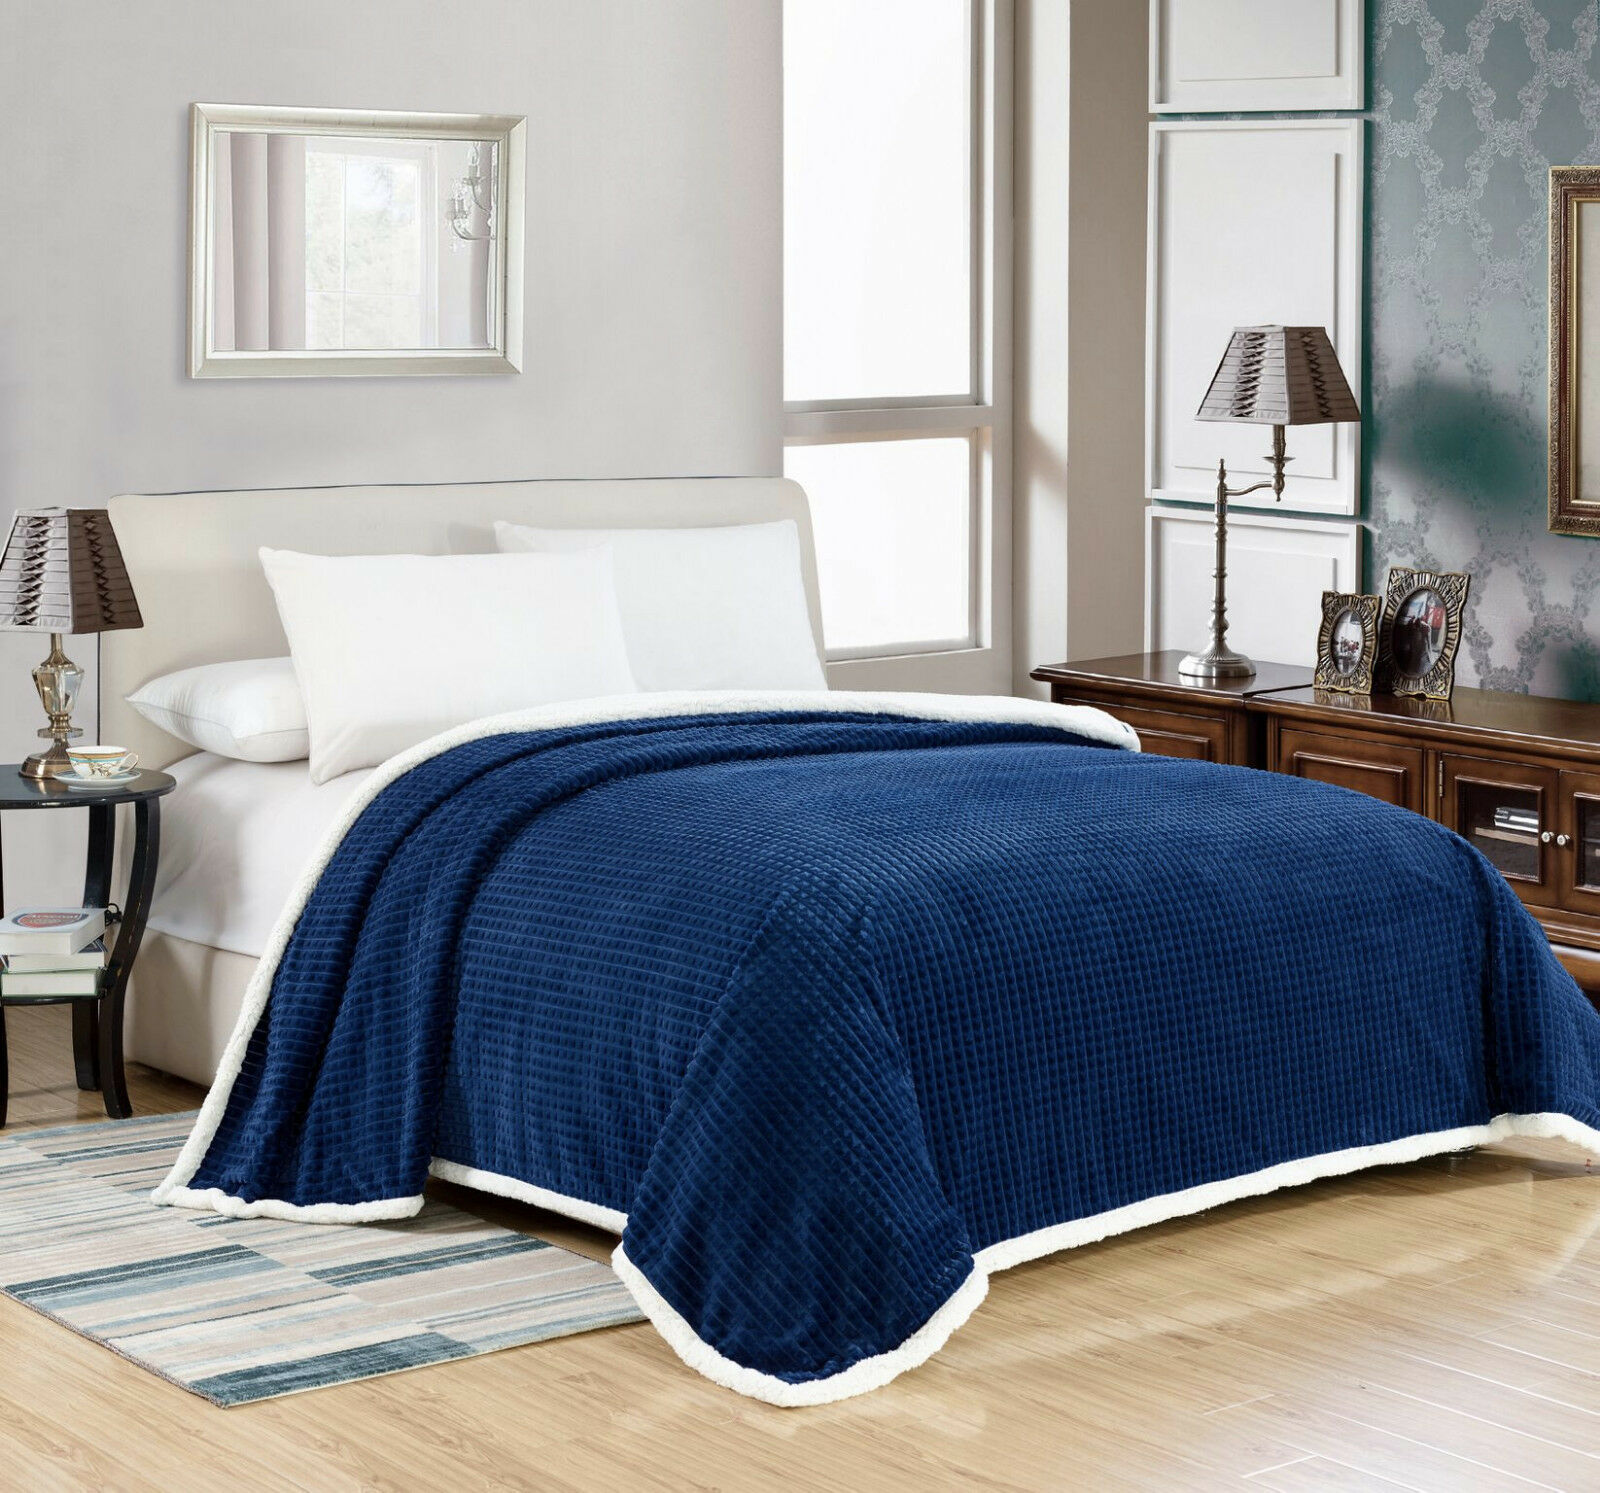 Oversized Premium Plush Sherpa Blanket Covers - Assorted Colors & Sizes